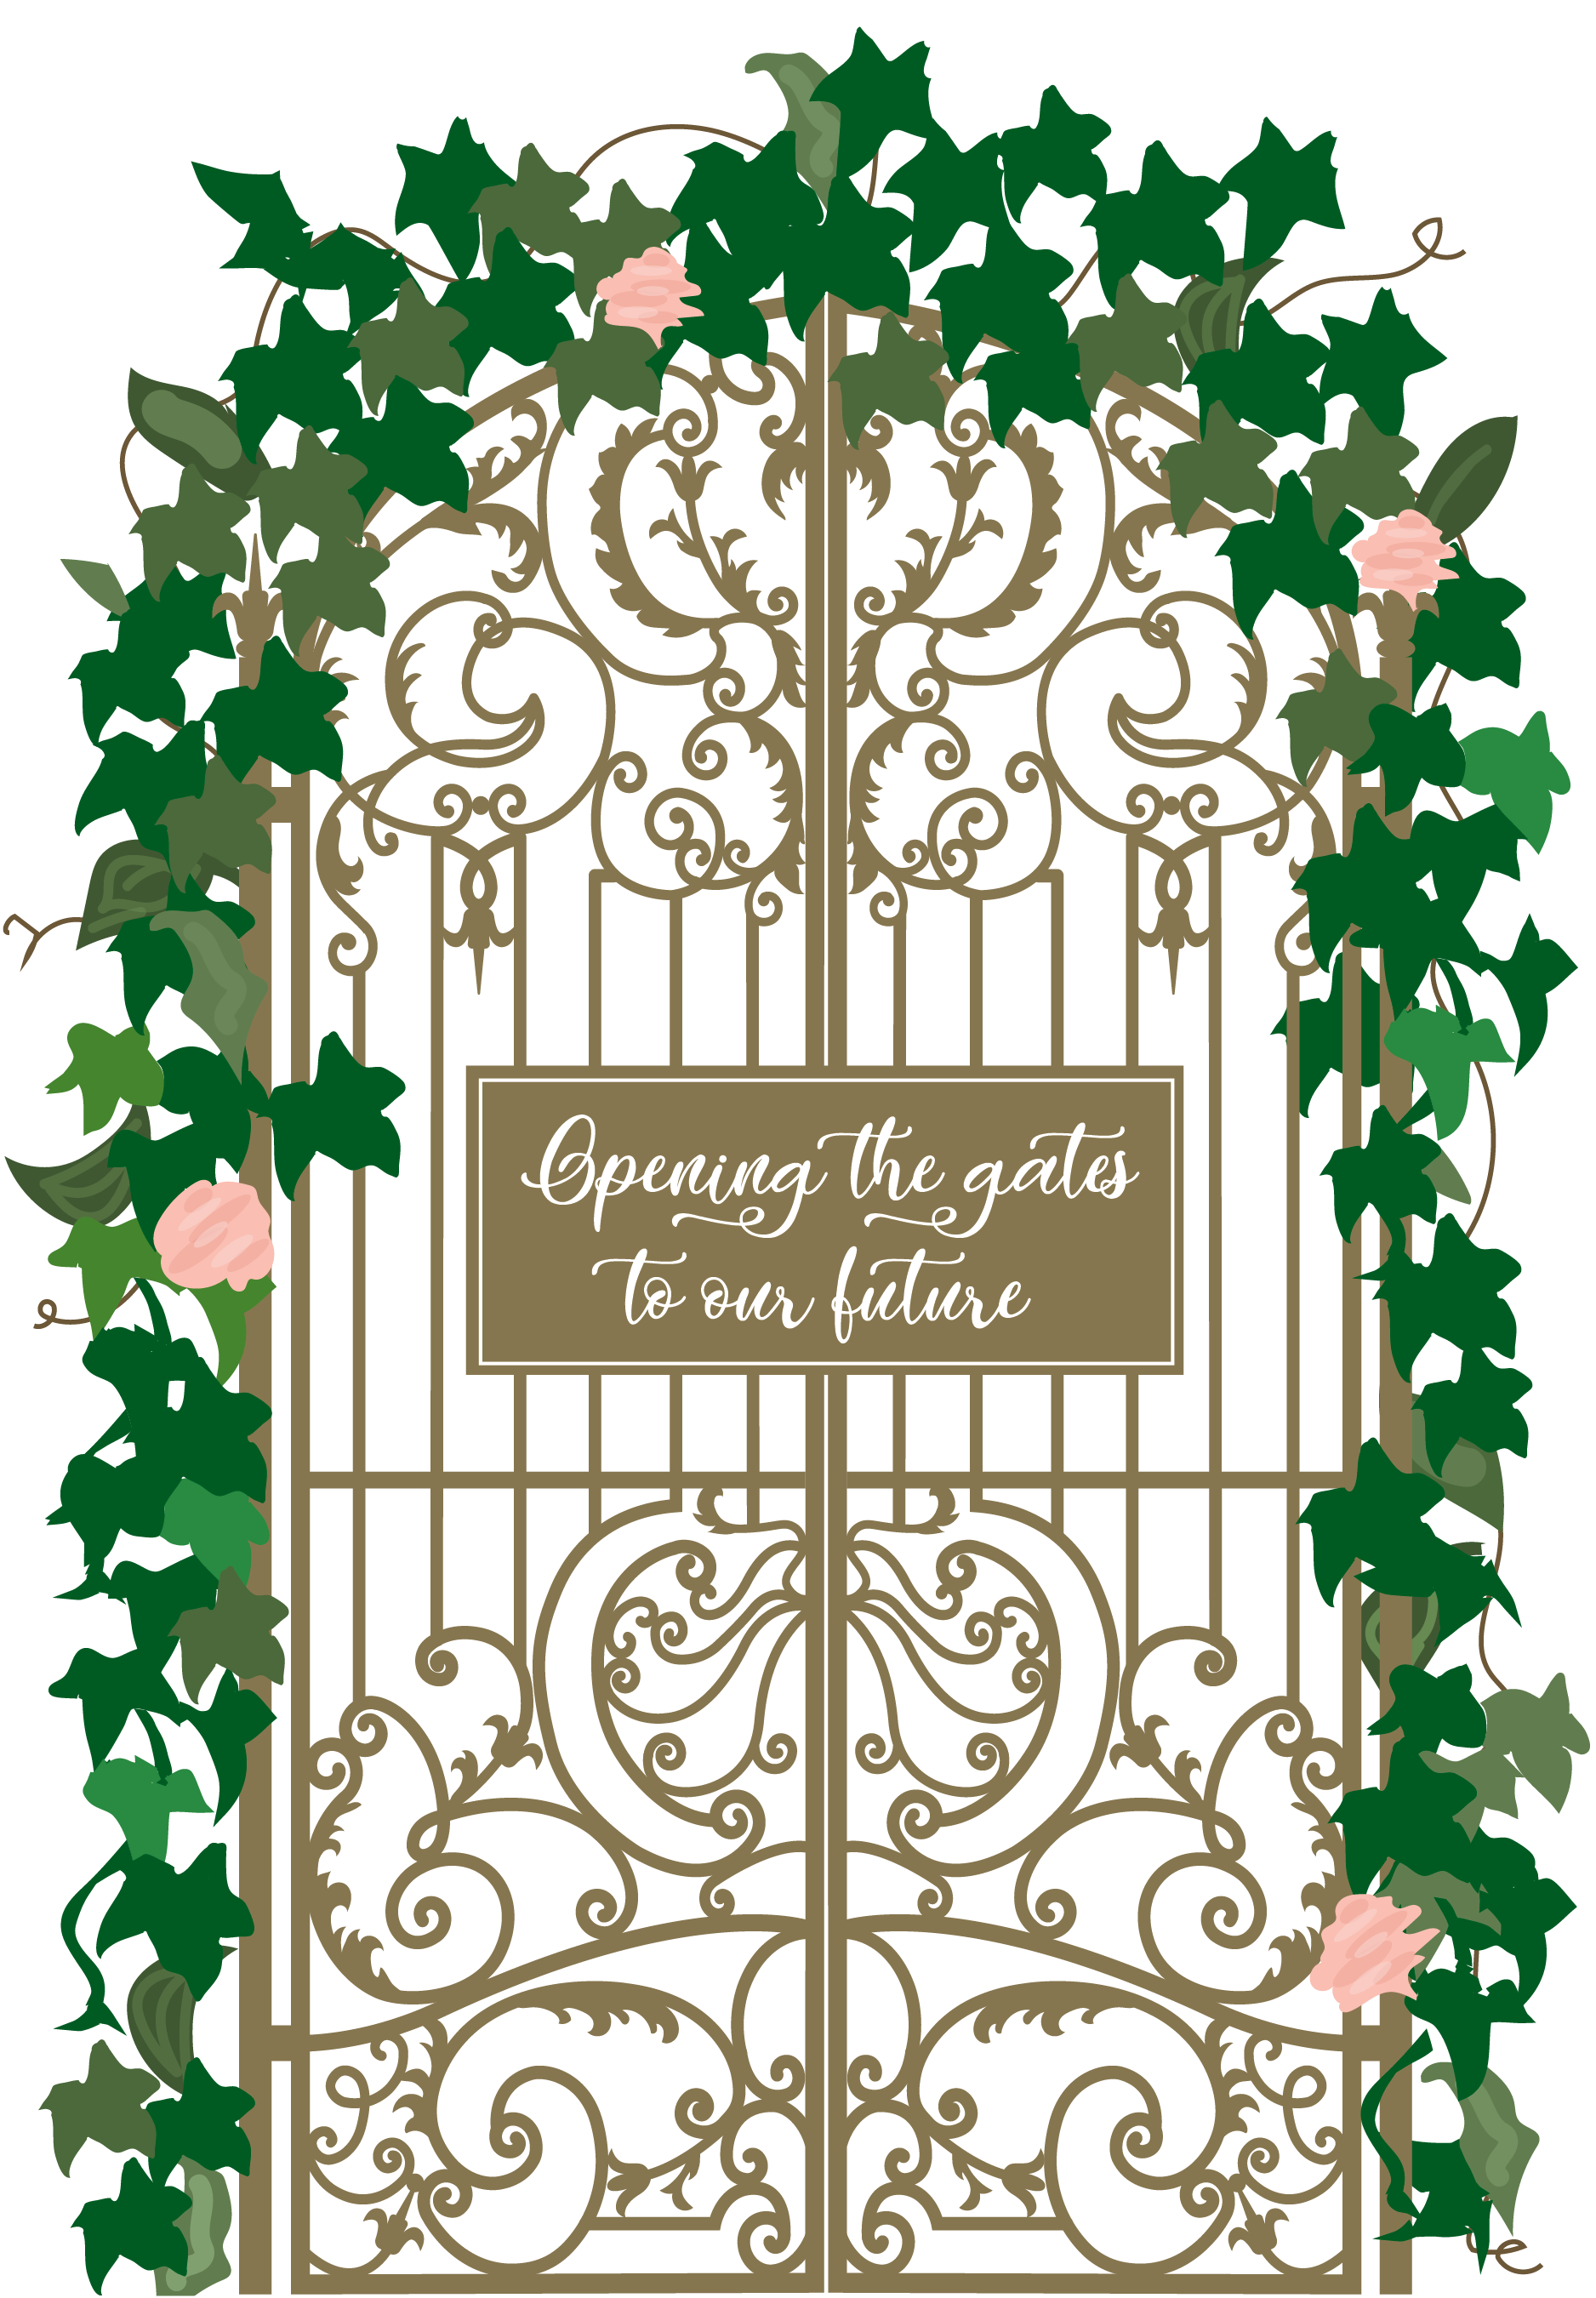 The Fay School 2020 Gala, Opening the gates to Fay's future